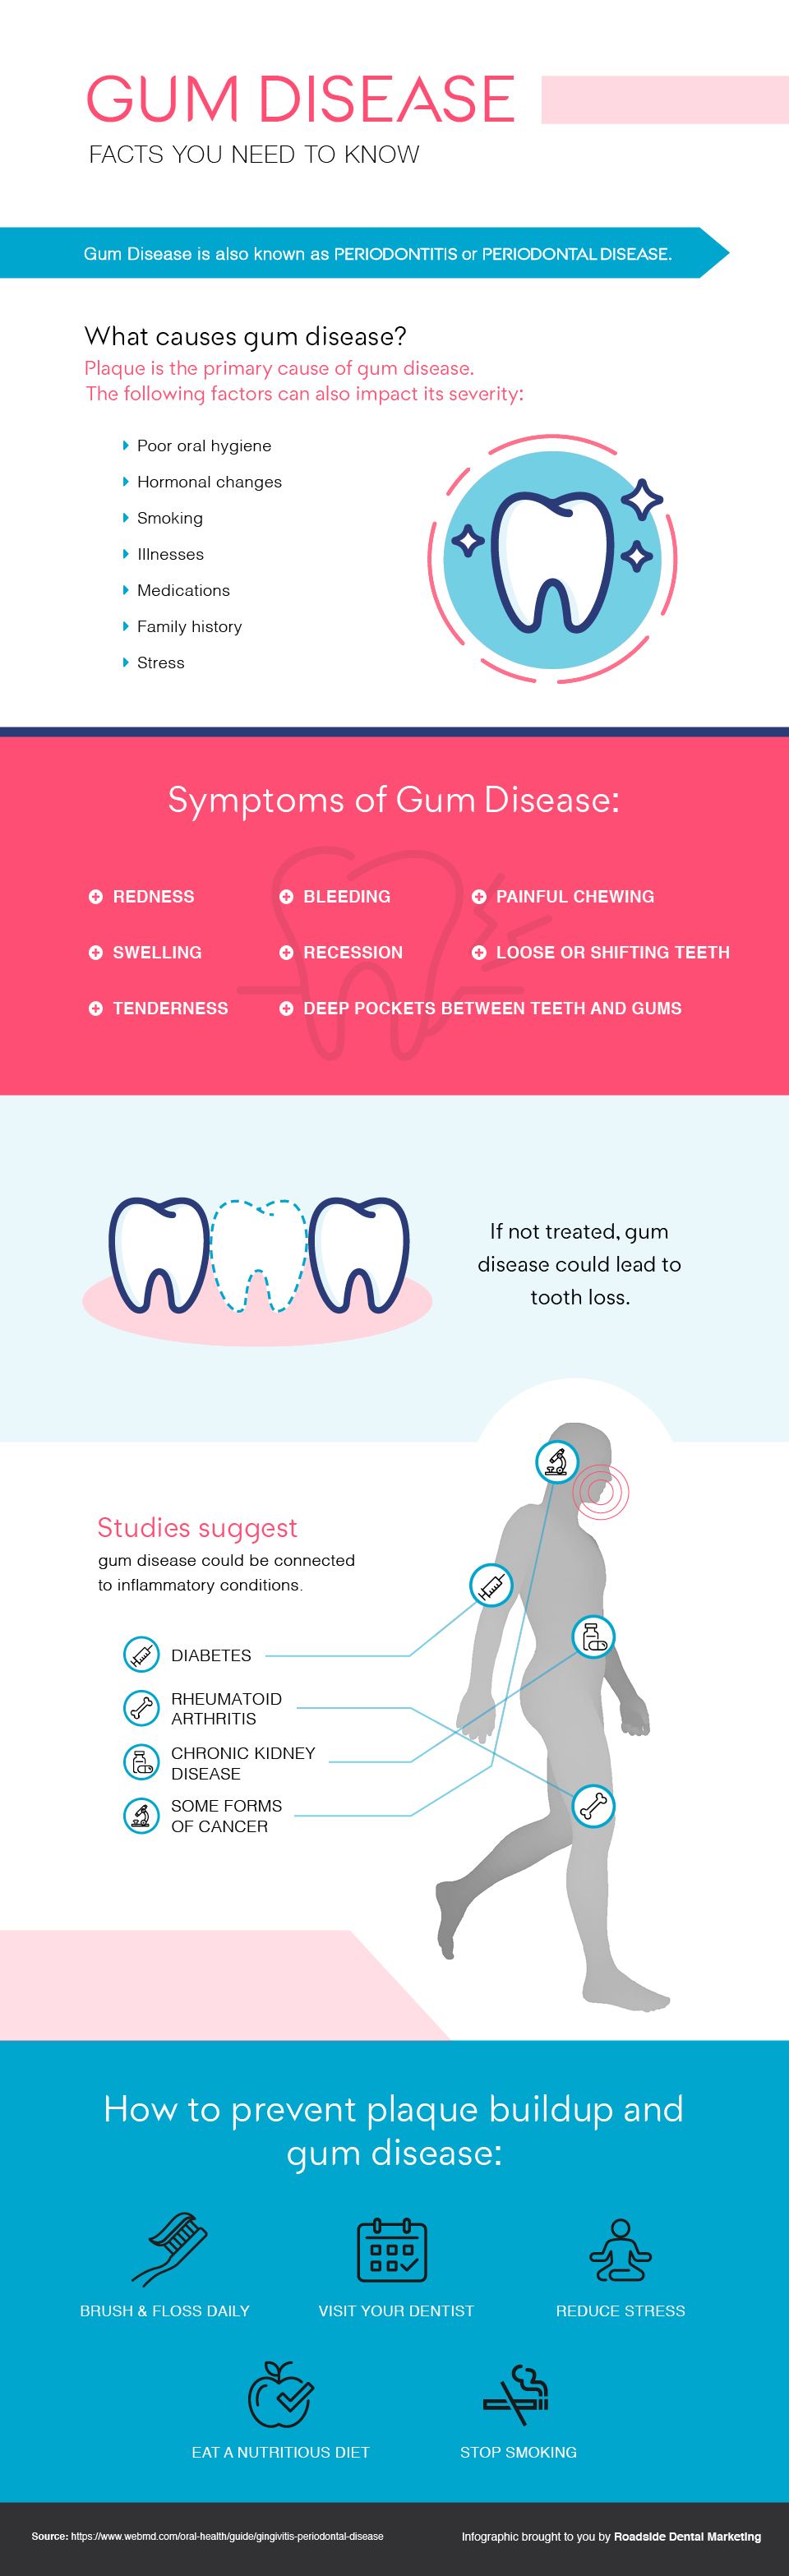 Infographic showing symptoms and causes of gum disease